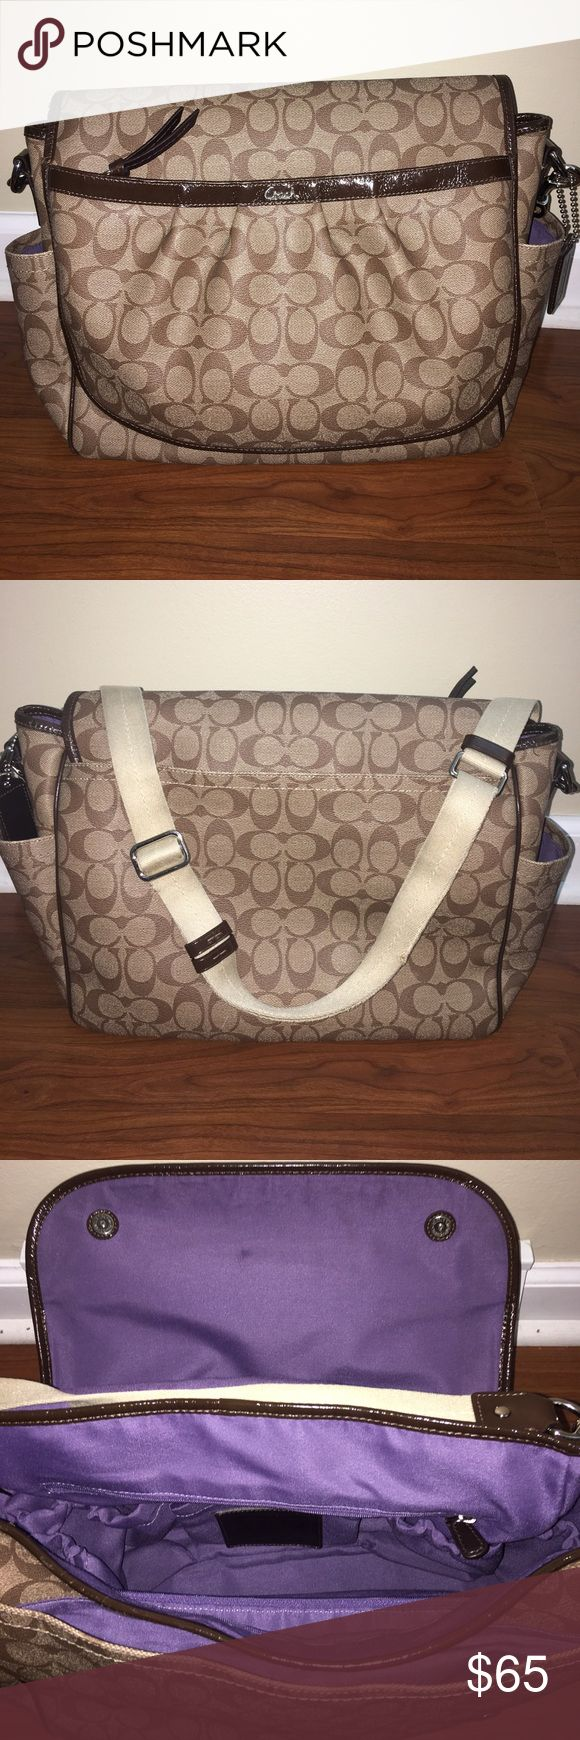 COACH SNAPHEAD BABY DIAPER BAG BROWN STYLE #F18373 In good condition with signs of wear/ tear on bottom of corners, trim on bag and a little scratch on the back of the bag as seen in pictures. Color-brown/purple, monogrammed pattern, Long strap adjustable/detachable with stitching that came apart as seen in picture. Multifunctional /very roomy. Coated canvas with patent leather trim. Inside zip, cell phone and multifunction pockets. Outside pockets (front/back), No stains inside of bag just…